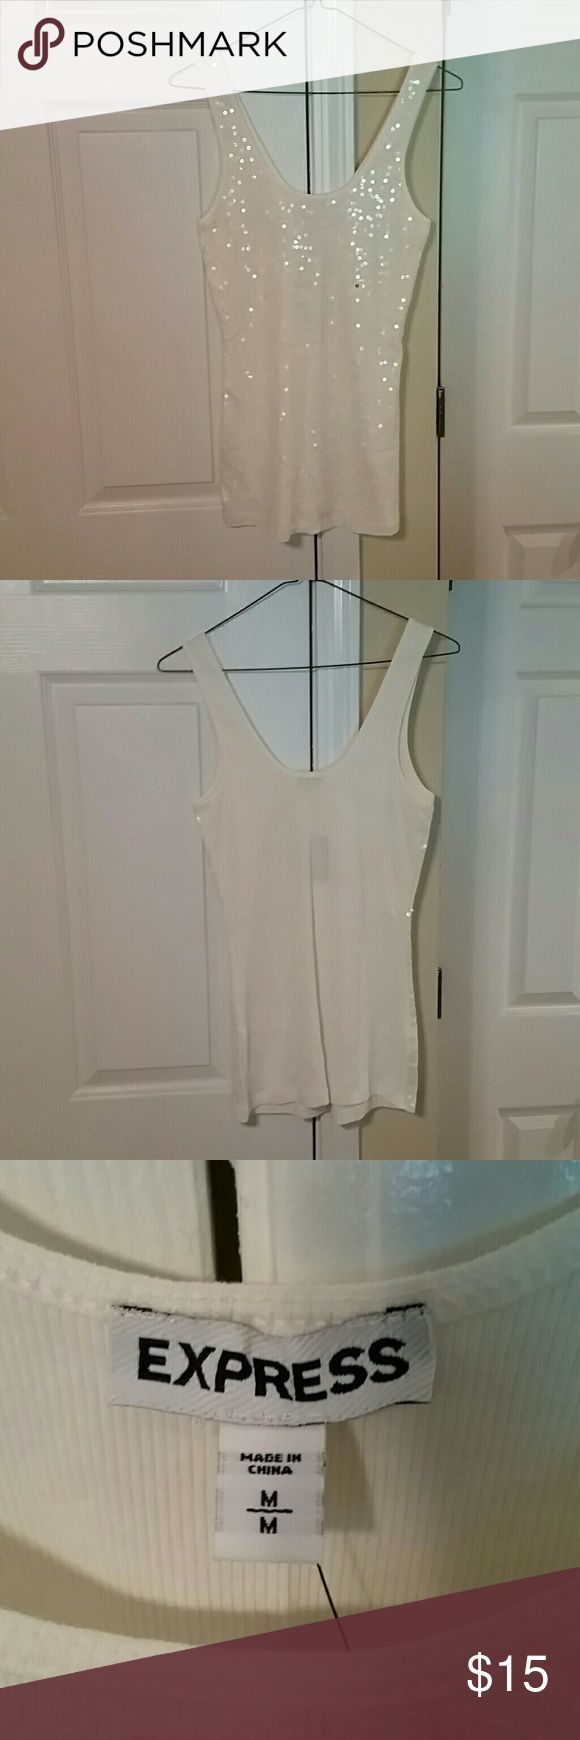 Express White Sequin Tank Top Size M An Express White Sequin Tank Top Size M. NWT. Nice top to wear with a blazer or on a night out in the town. Email me if interested. Thanks! Express Tops Tank Tops